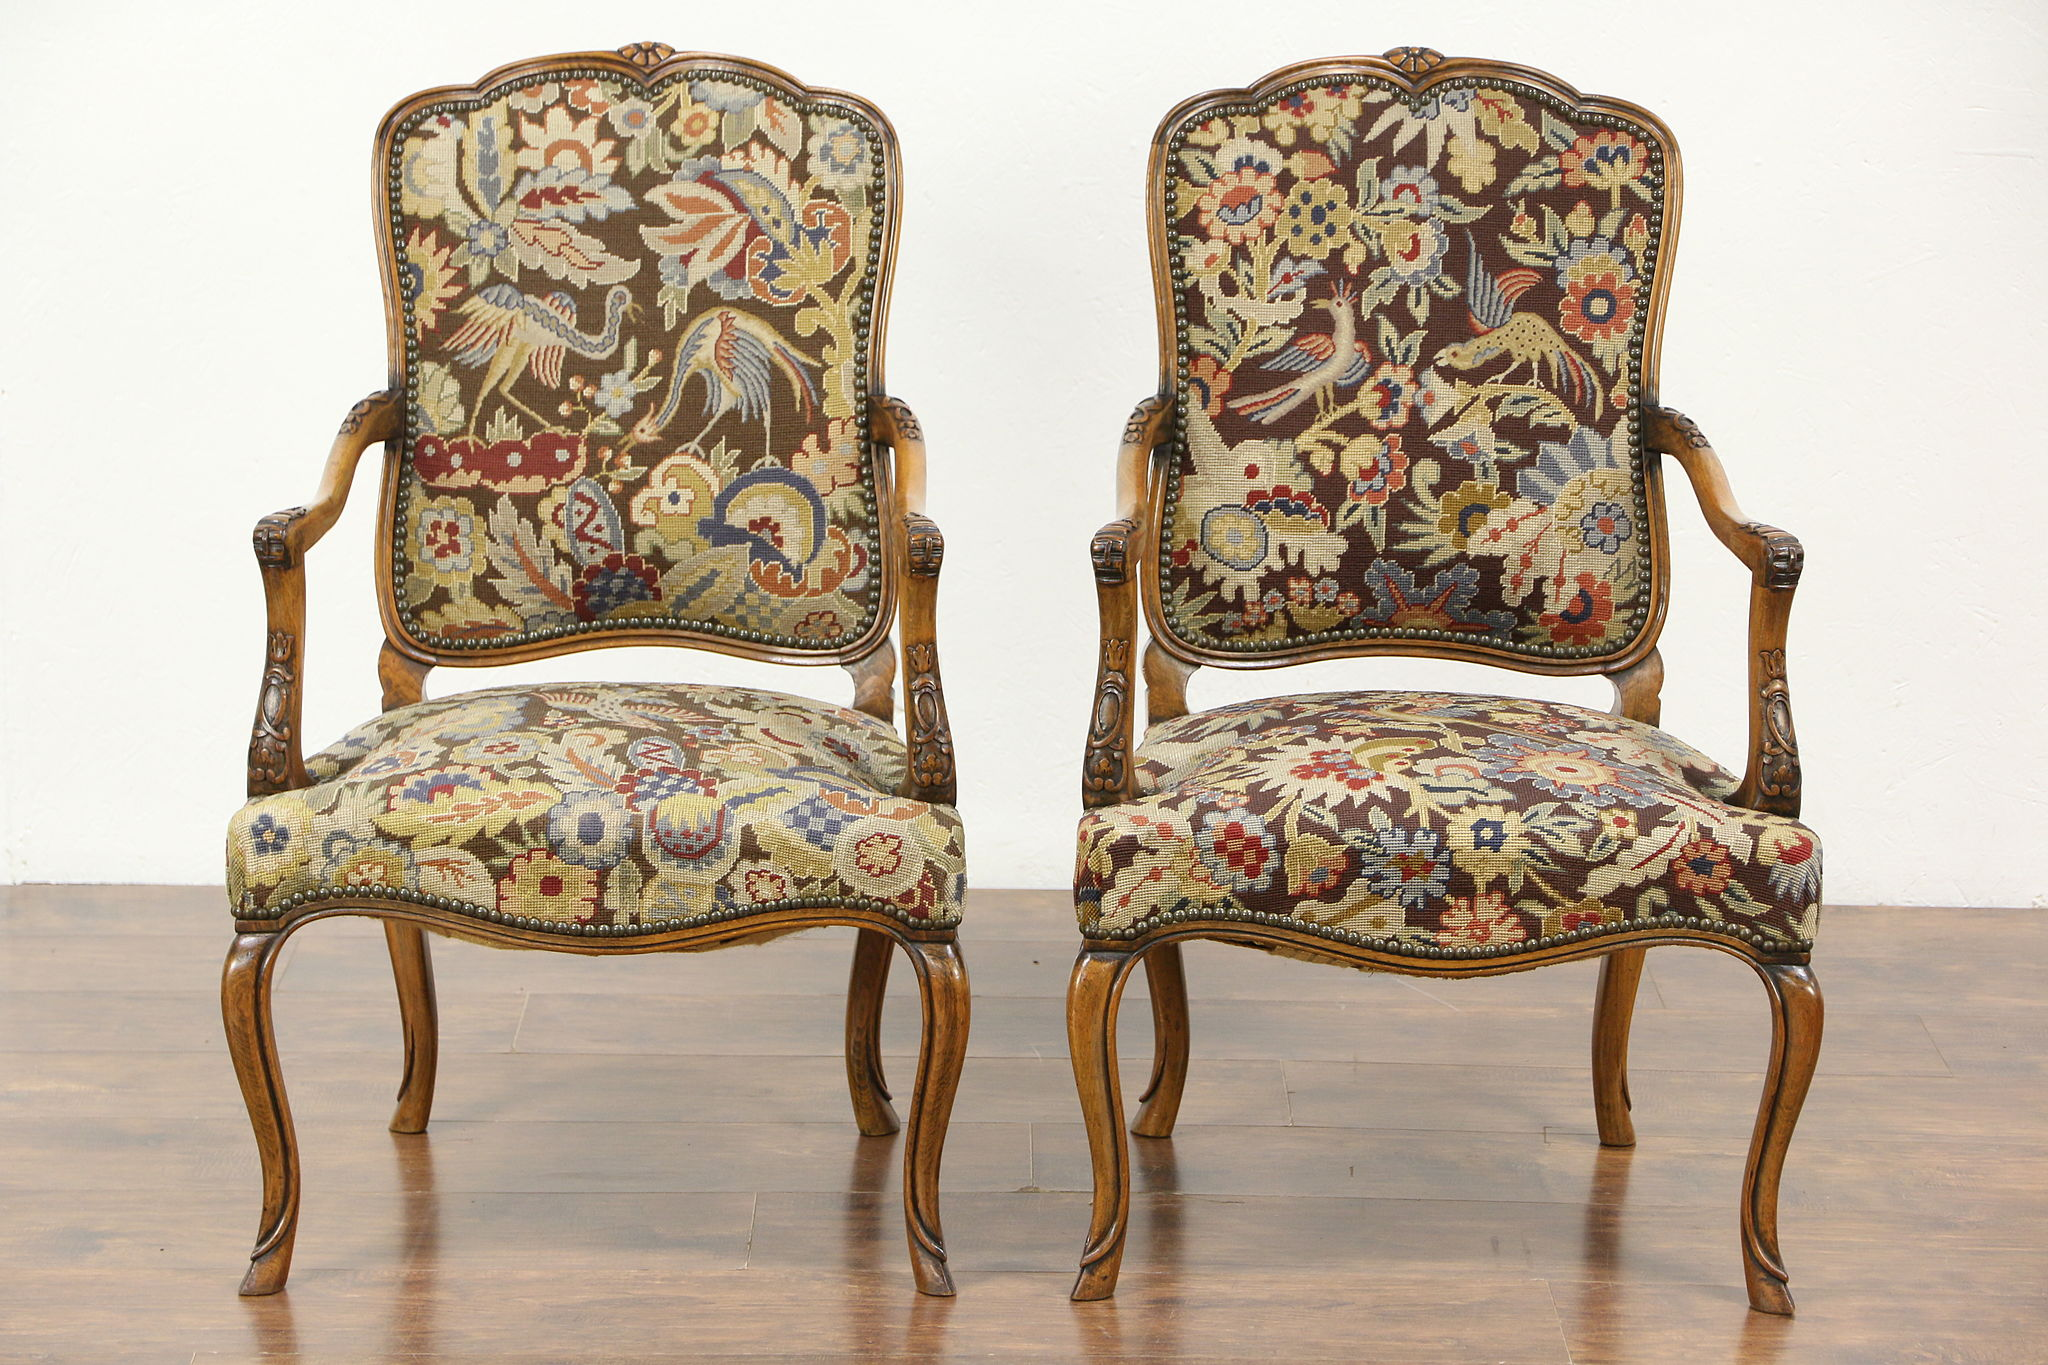 Pair of Carved Antique Scandinavian Chairs Needlepoint Petit